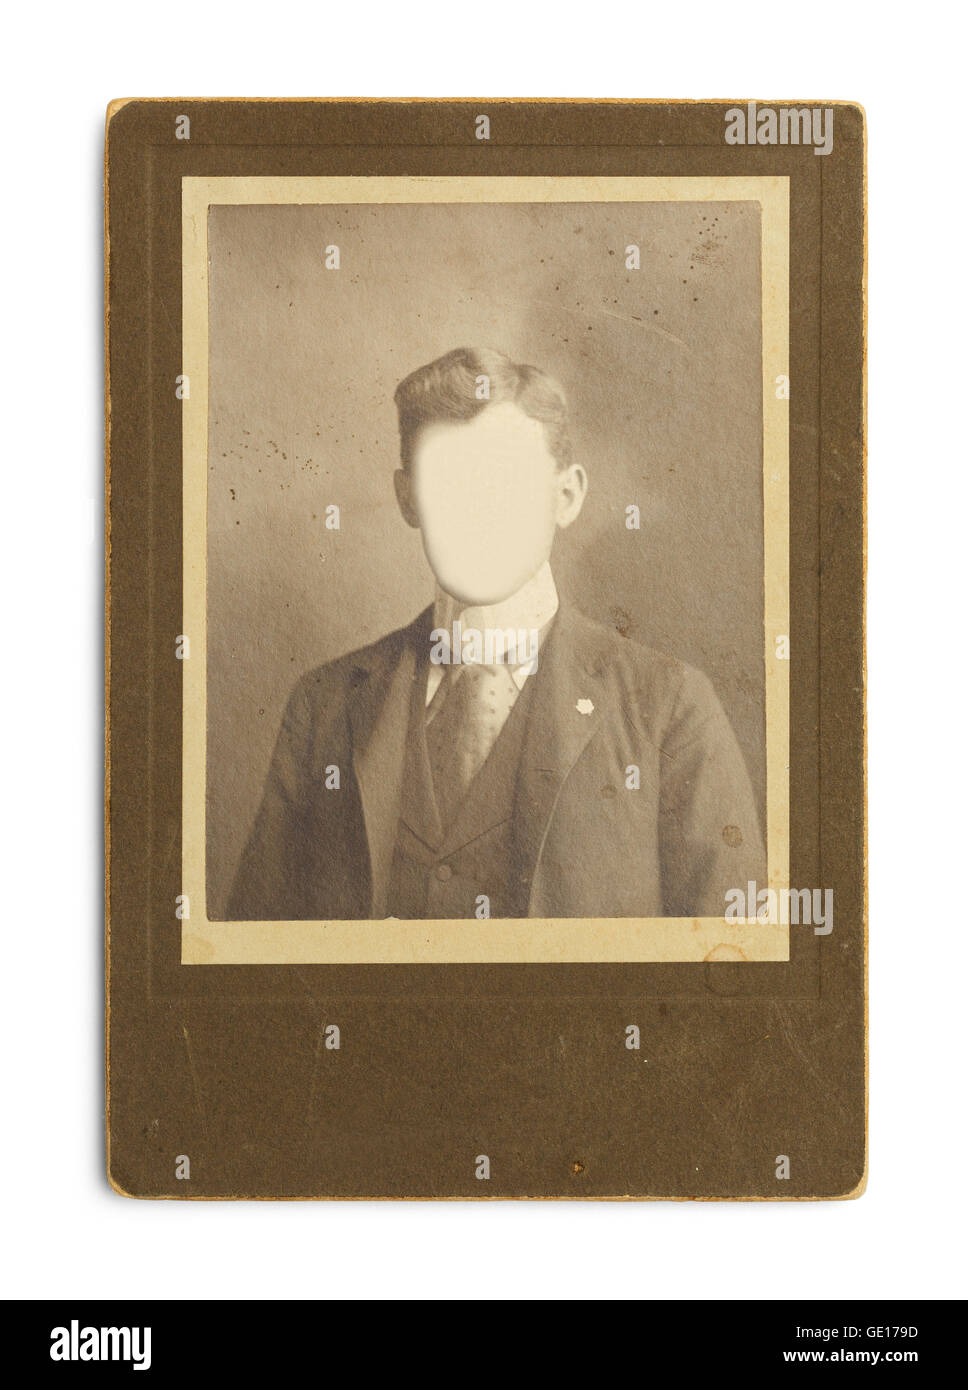 Old Antique Photo of Man With Face Cut Out Isolated on White Background. - Stock Image